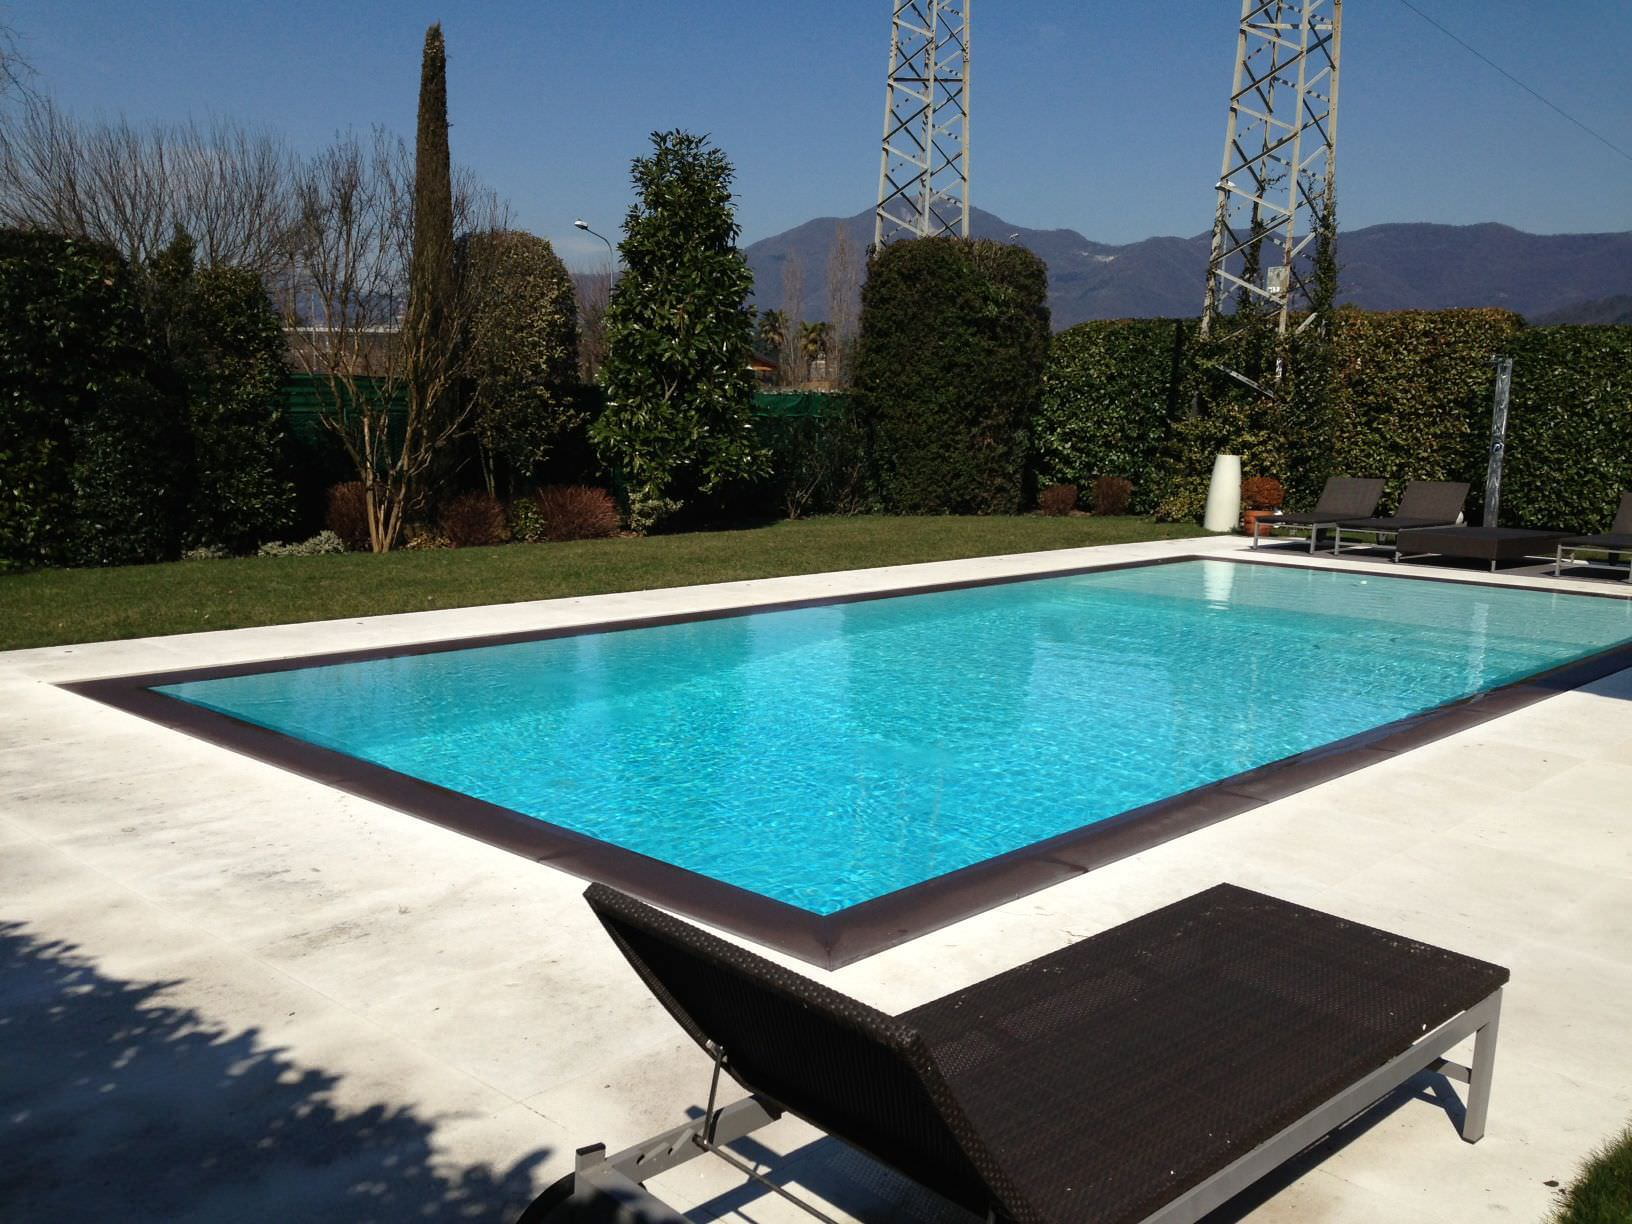 Contemporary sun lounger stainless steel pool EDILFARE PISCINE